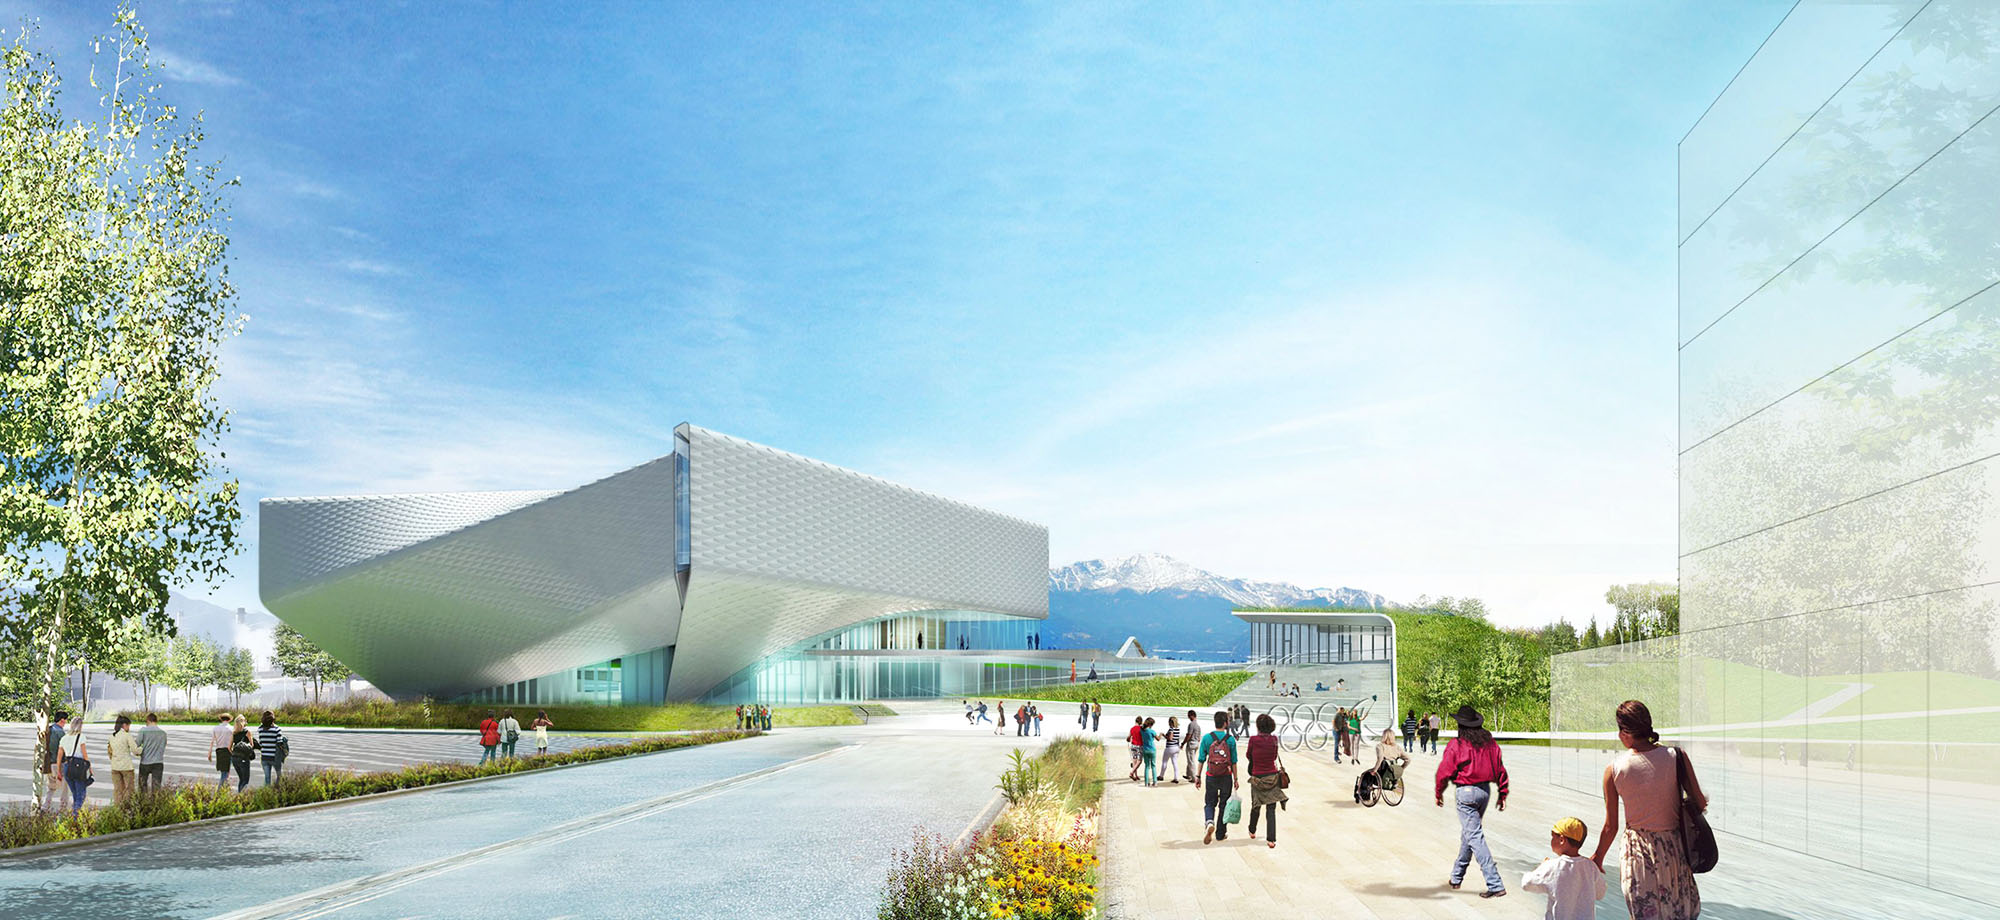 mm_United States Olympic Museum design by Diller Scofidio + Renfro _04